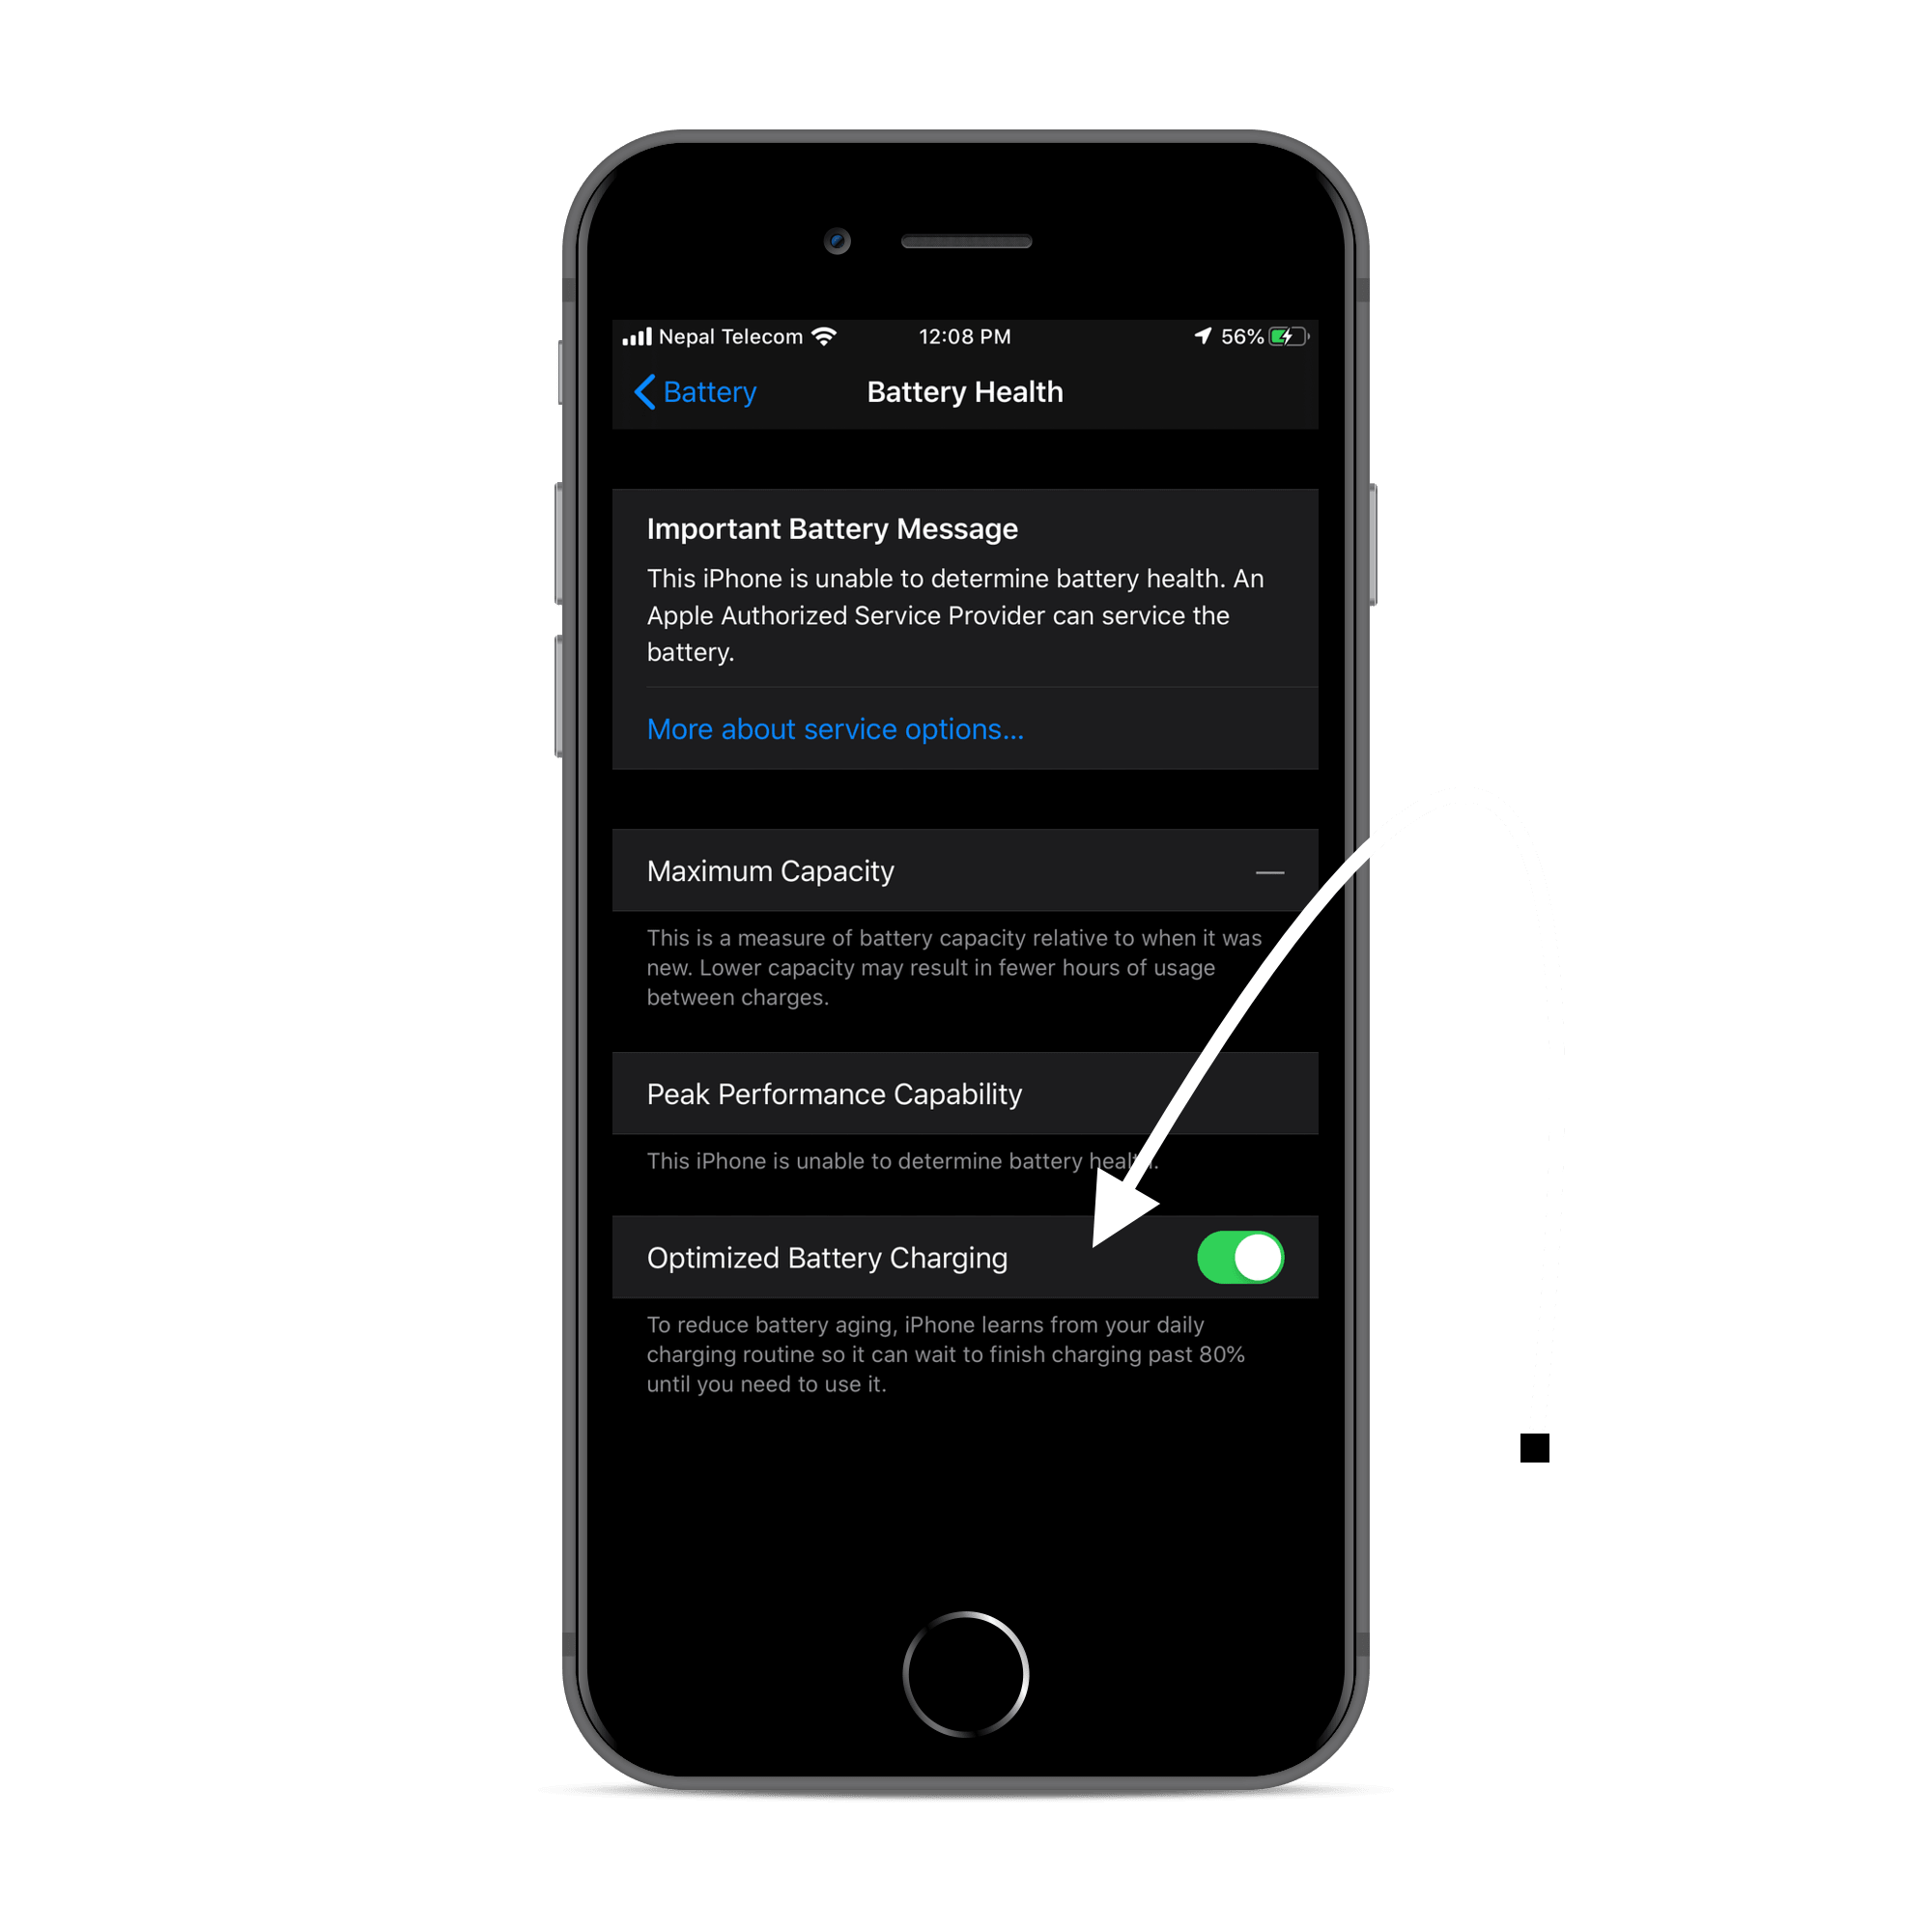 Optimized-Battery Charging Feature in iOS 13